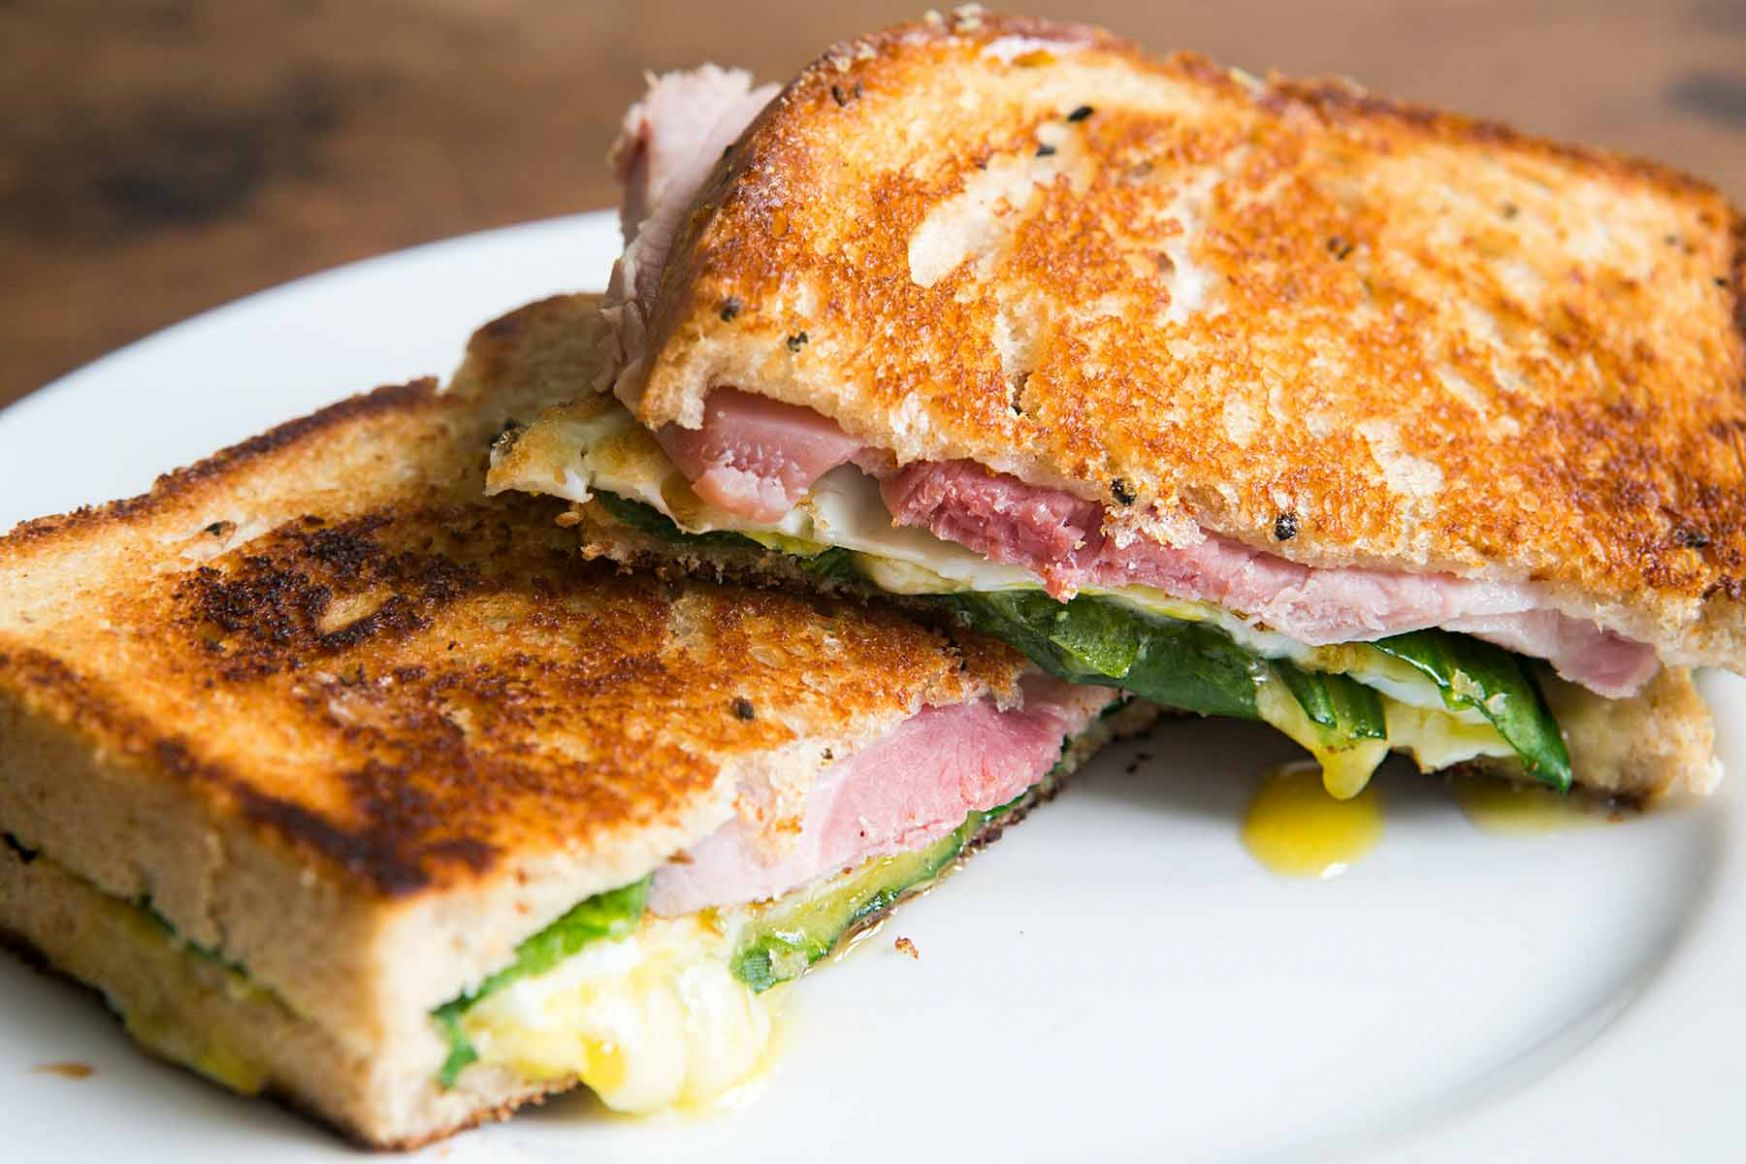 Greens, Eggs, and Ham, Grilled Cheese Sandwich - Sandwich Recipes Ham And Cheese